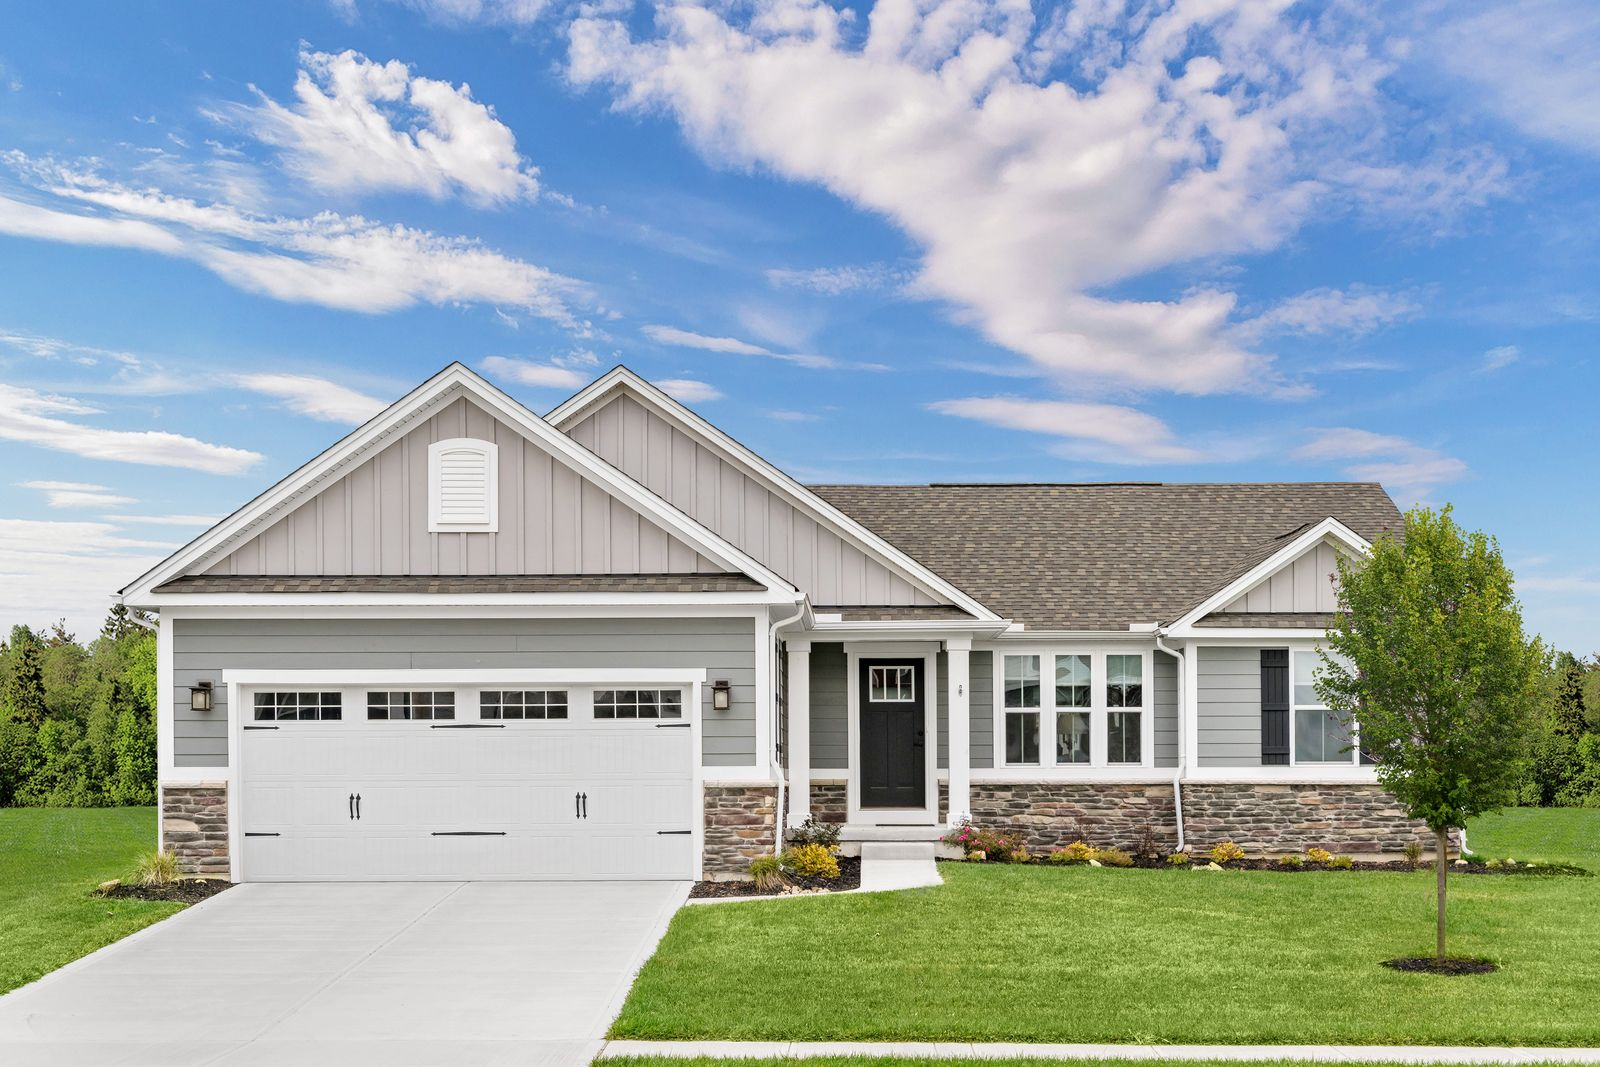 WELCOME HOME TO WINDEMERE:Only new construction in Wellington! Ranch & 2-story homes off Rt 58, on homesites up to 1/2 acre! Get more than you ever thought from the low $200s.Click here to schedule your visit today!